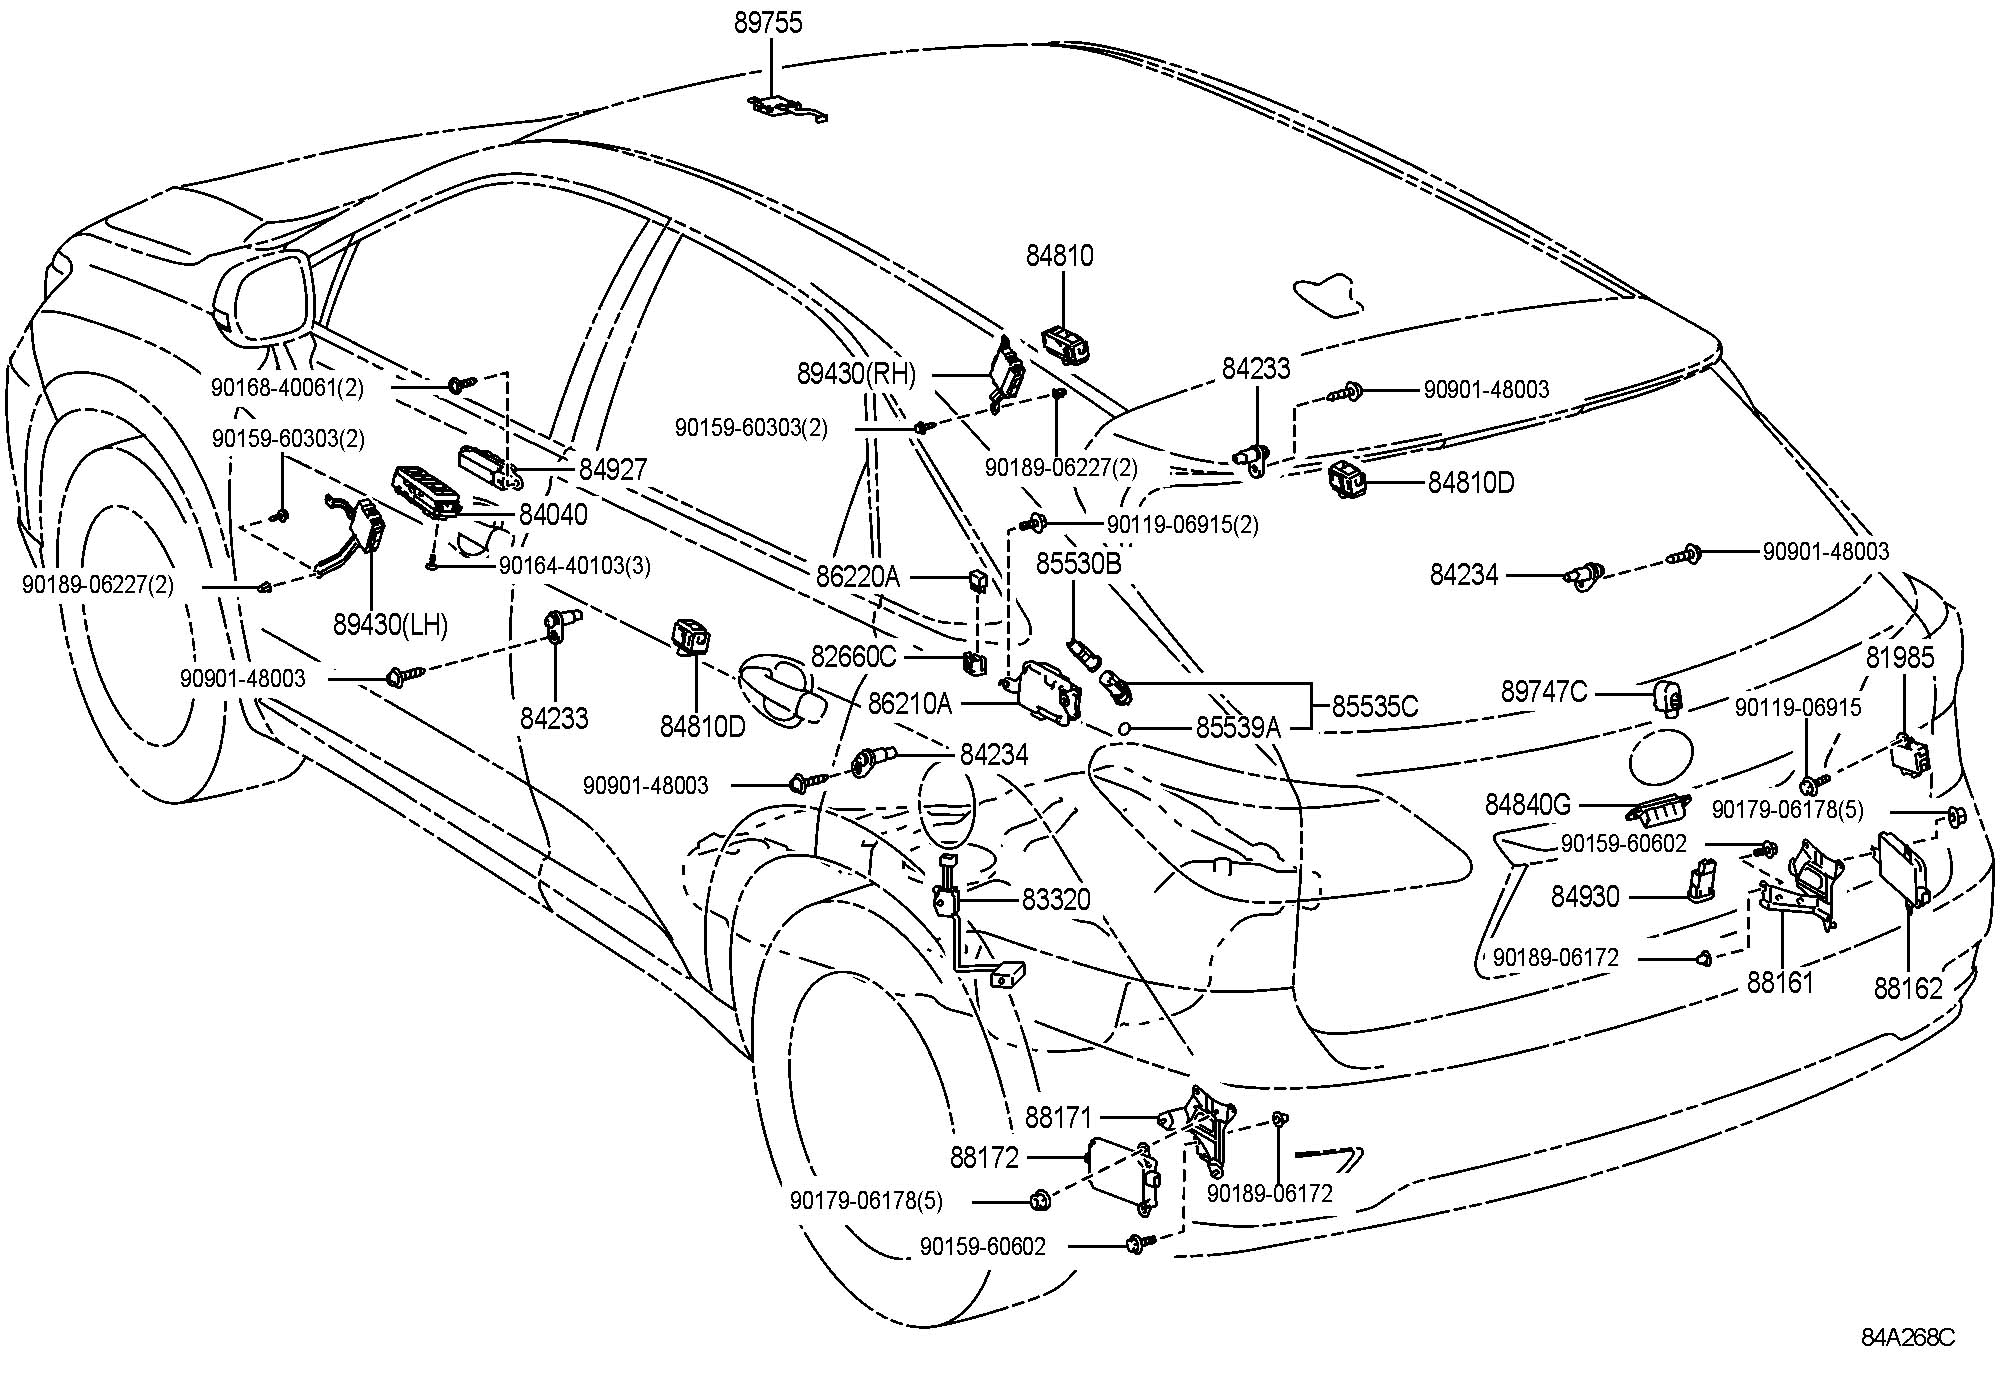 Lexus Gx Wiring Diagram Detailed Schematic Diagrams 2007 Is 250 Rx 350 Parts Basic U2022 Amp 2005